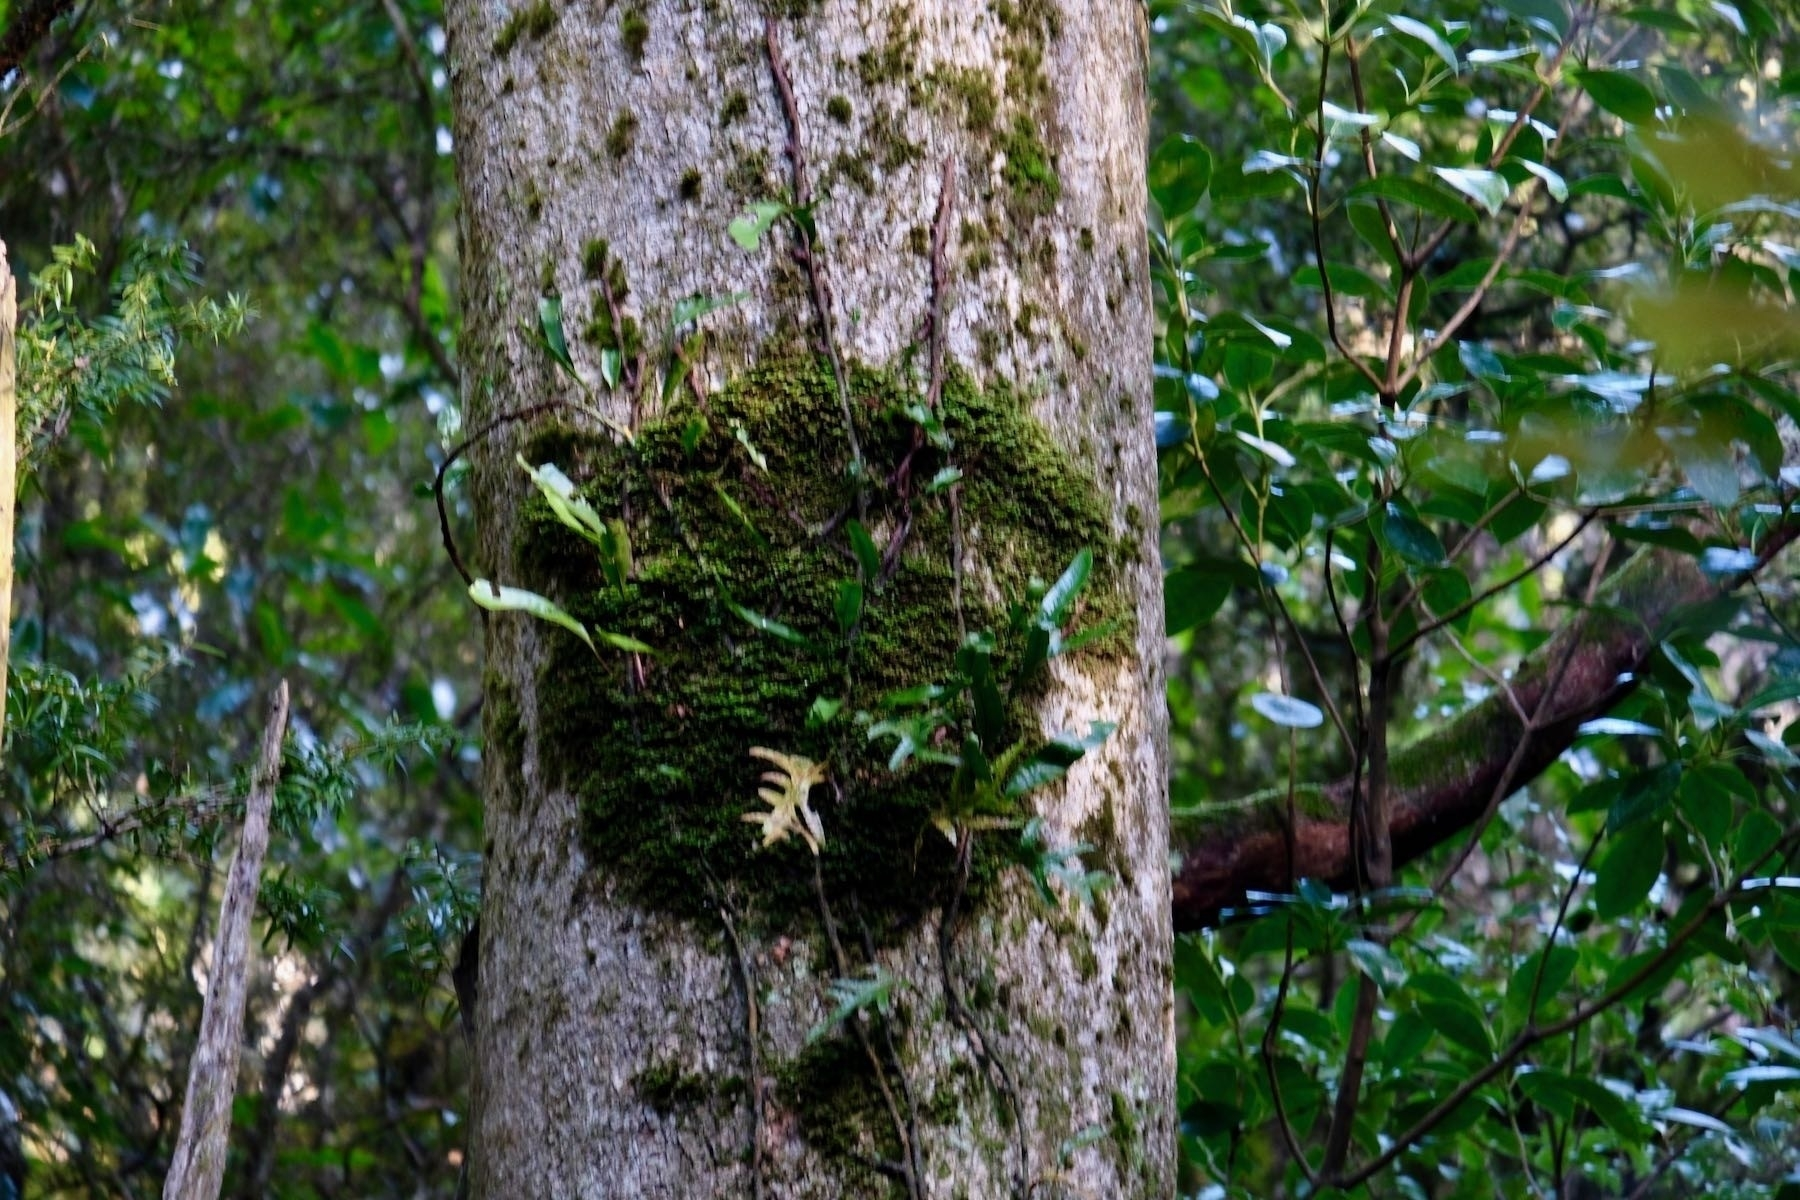 Clump of moss on a tree.